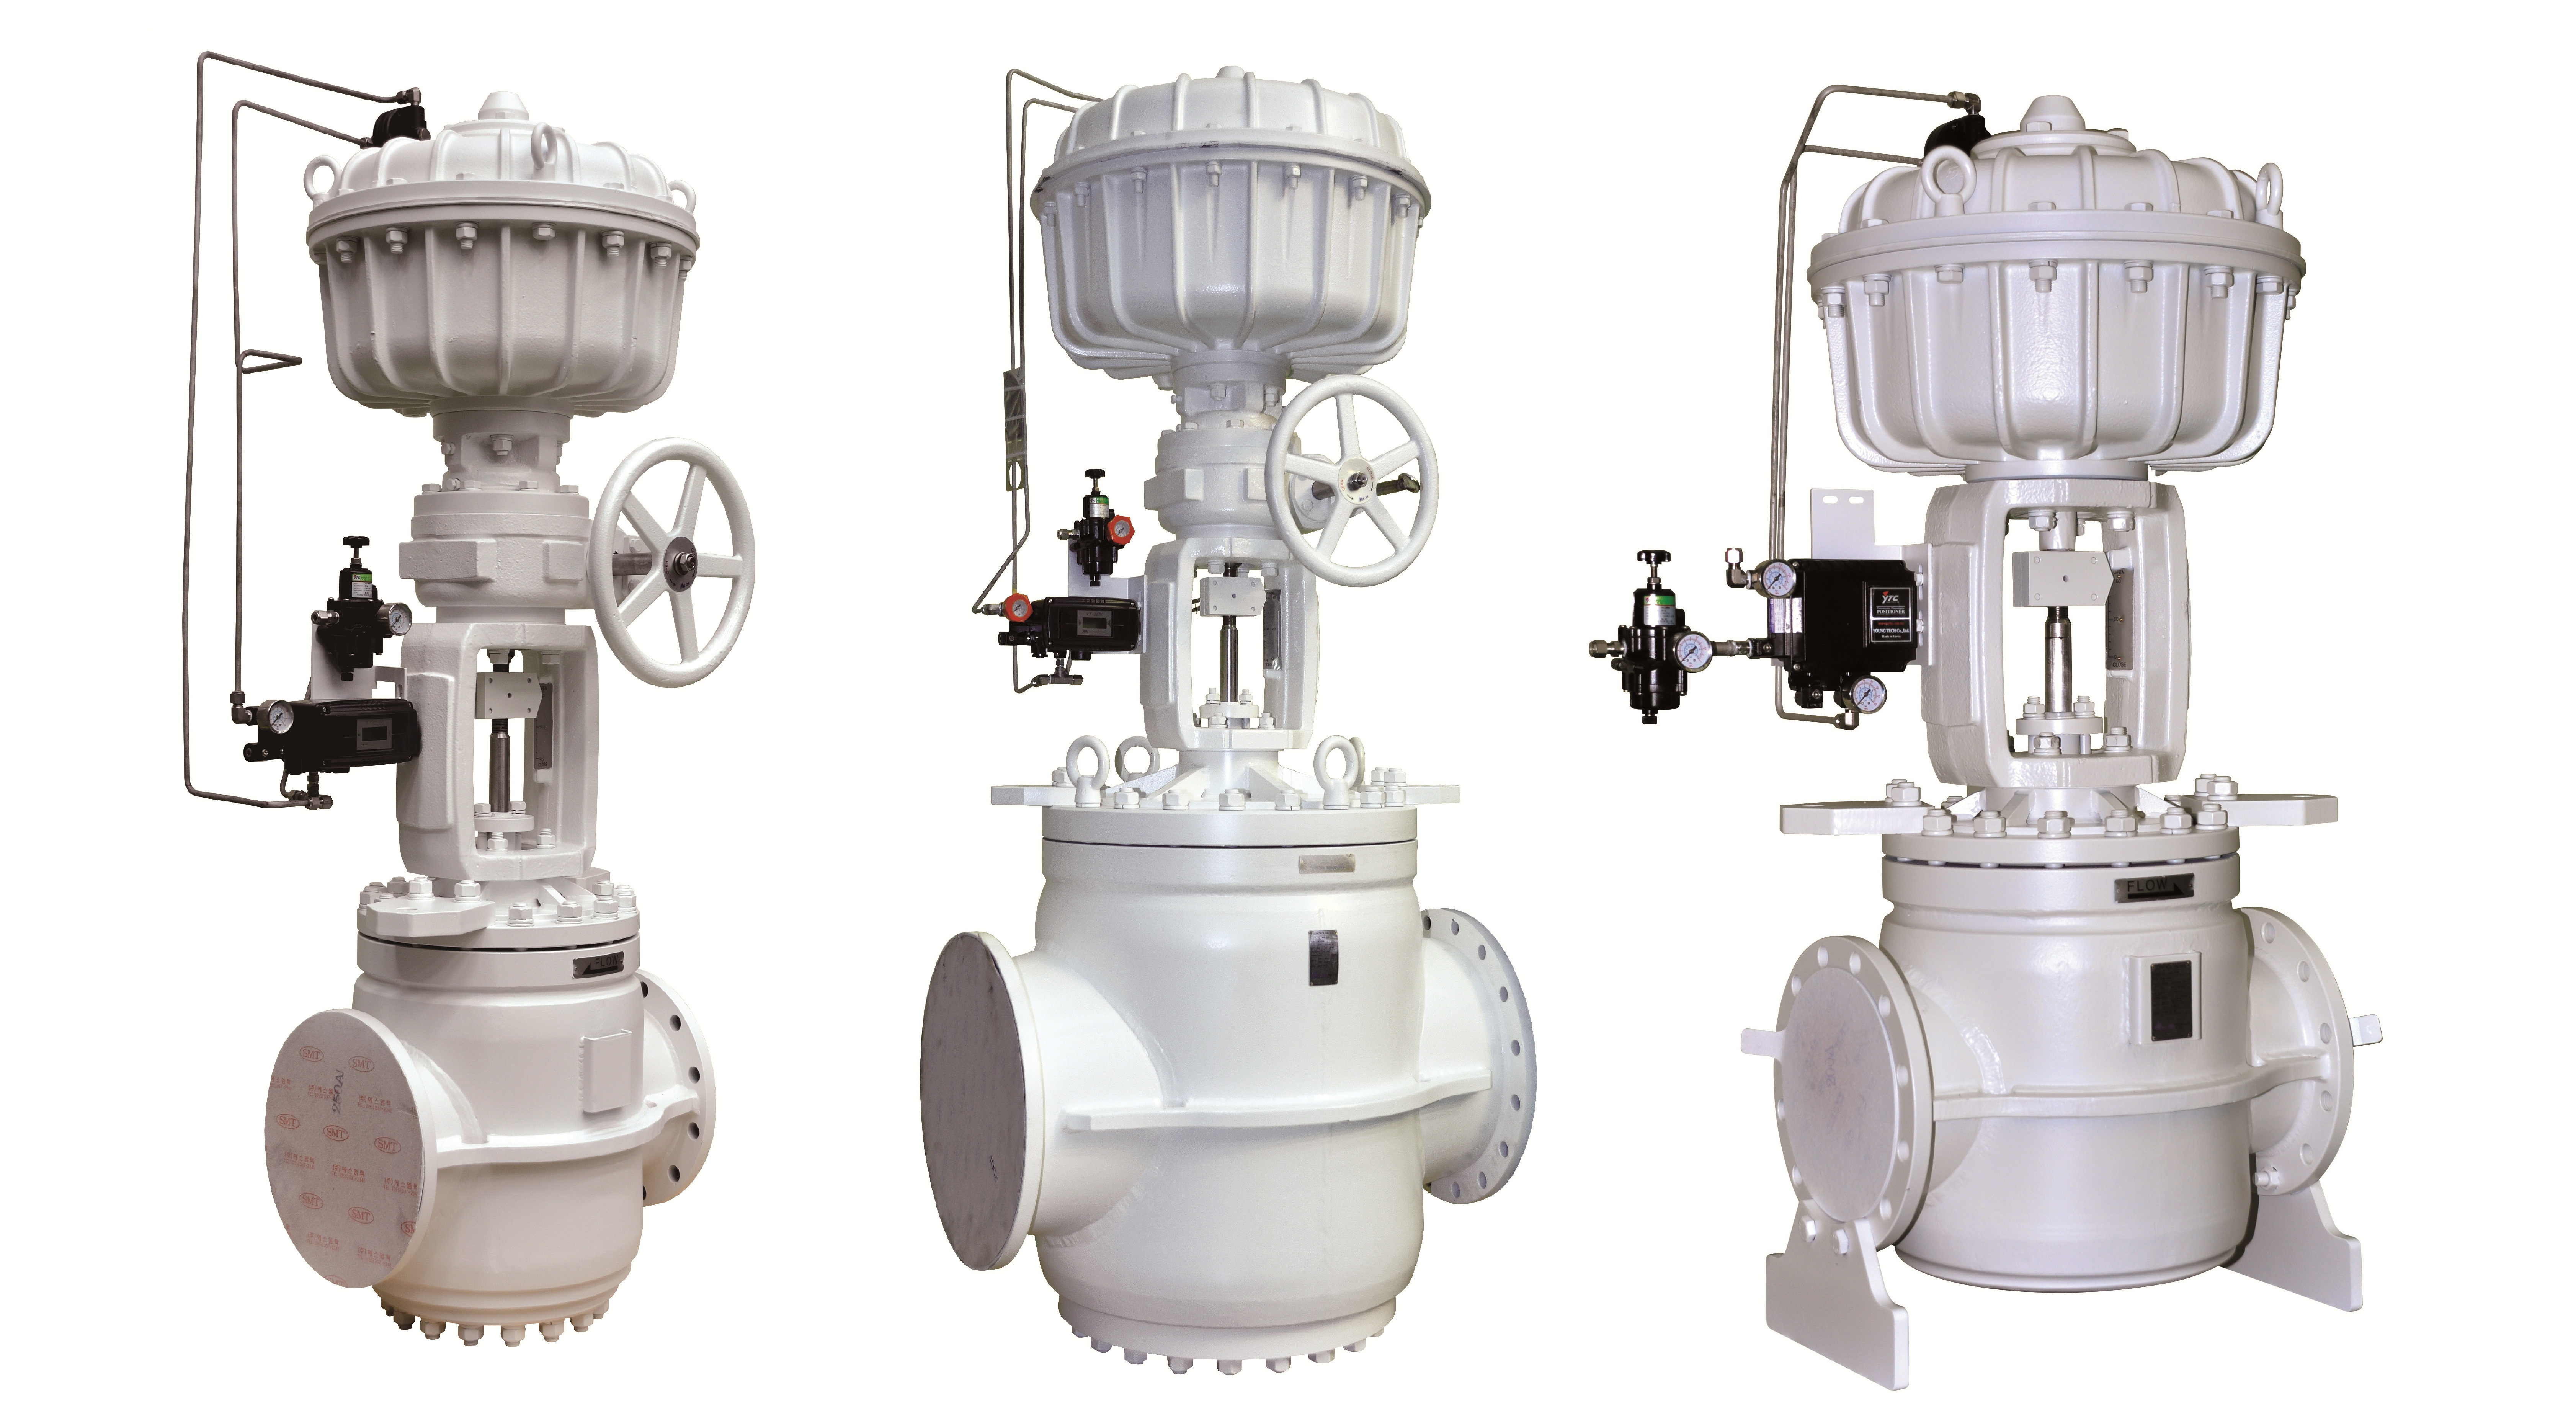 Pneumatic diaphragm valves mth no 1 control valve manufacturer pneumatic diaphragm valves ccuart Gallery